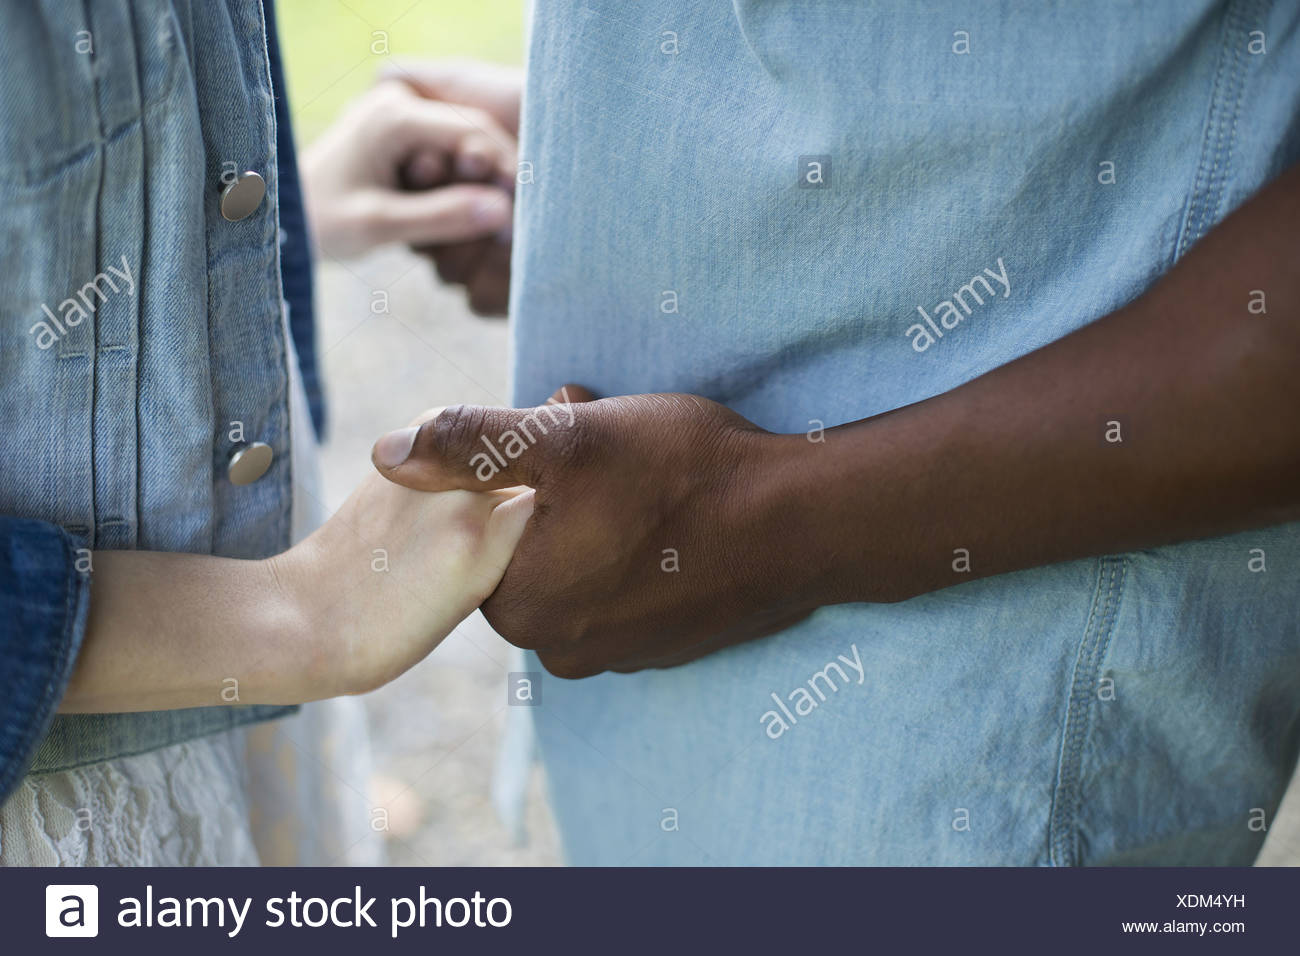 A young man and woman a couple holding hands. - Stock Image